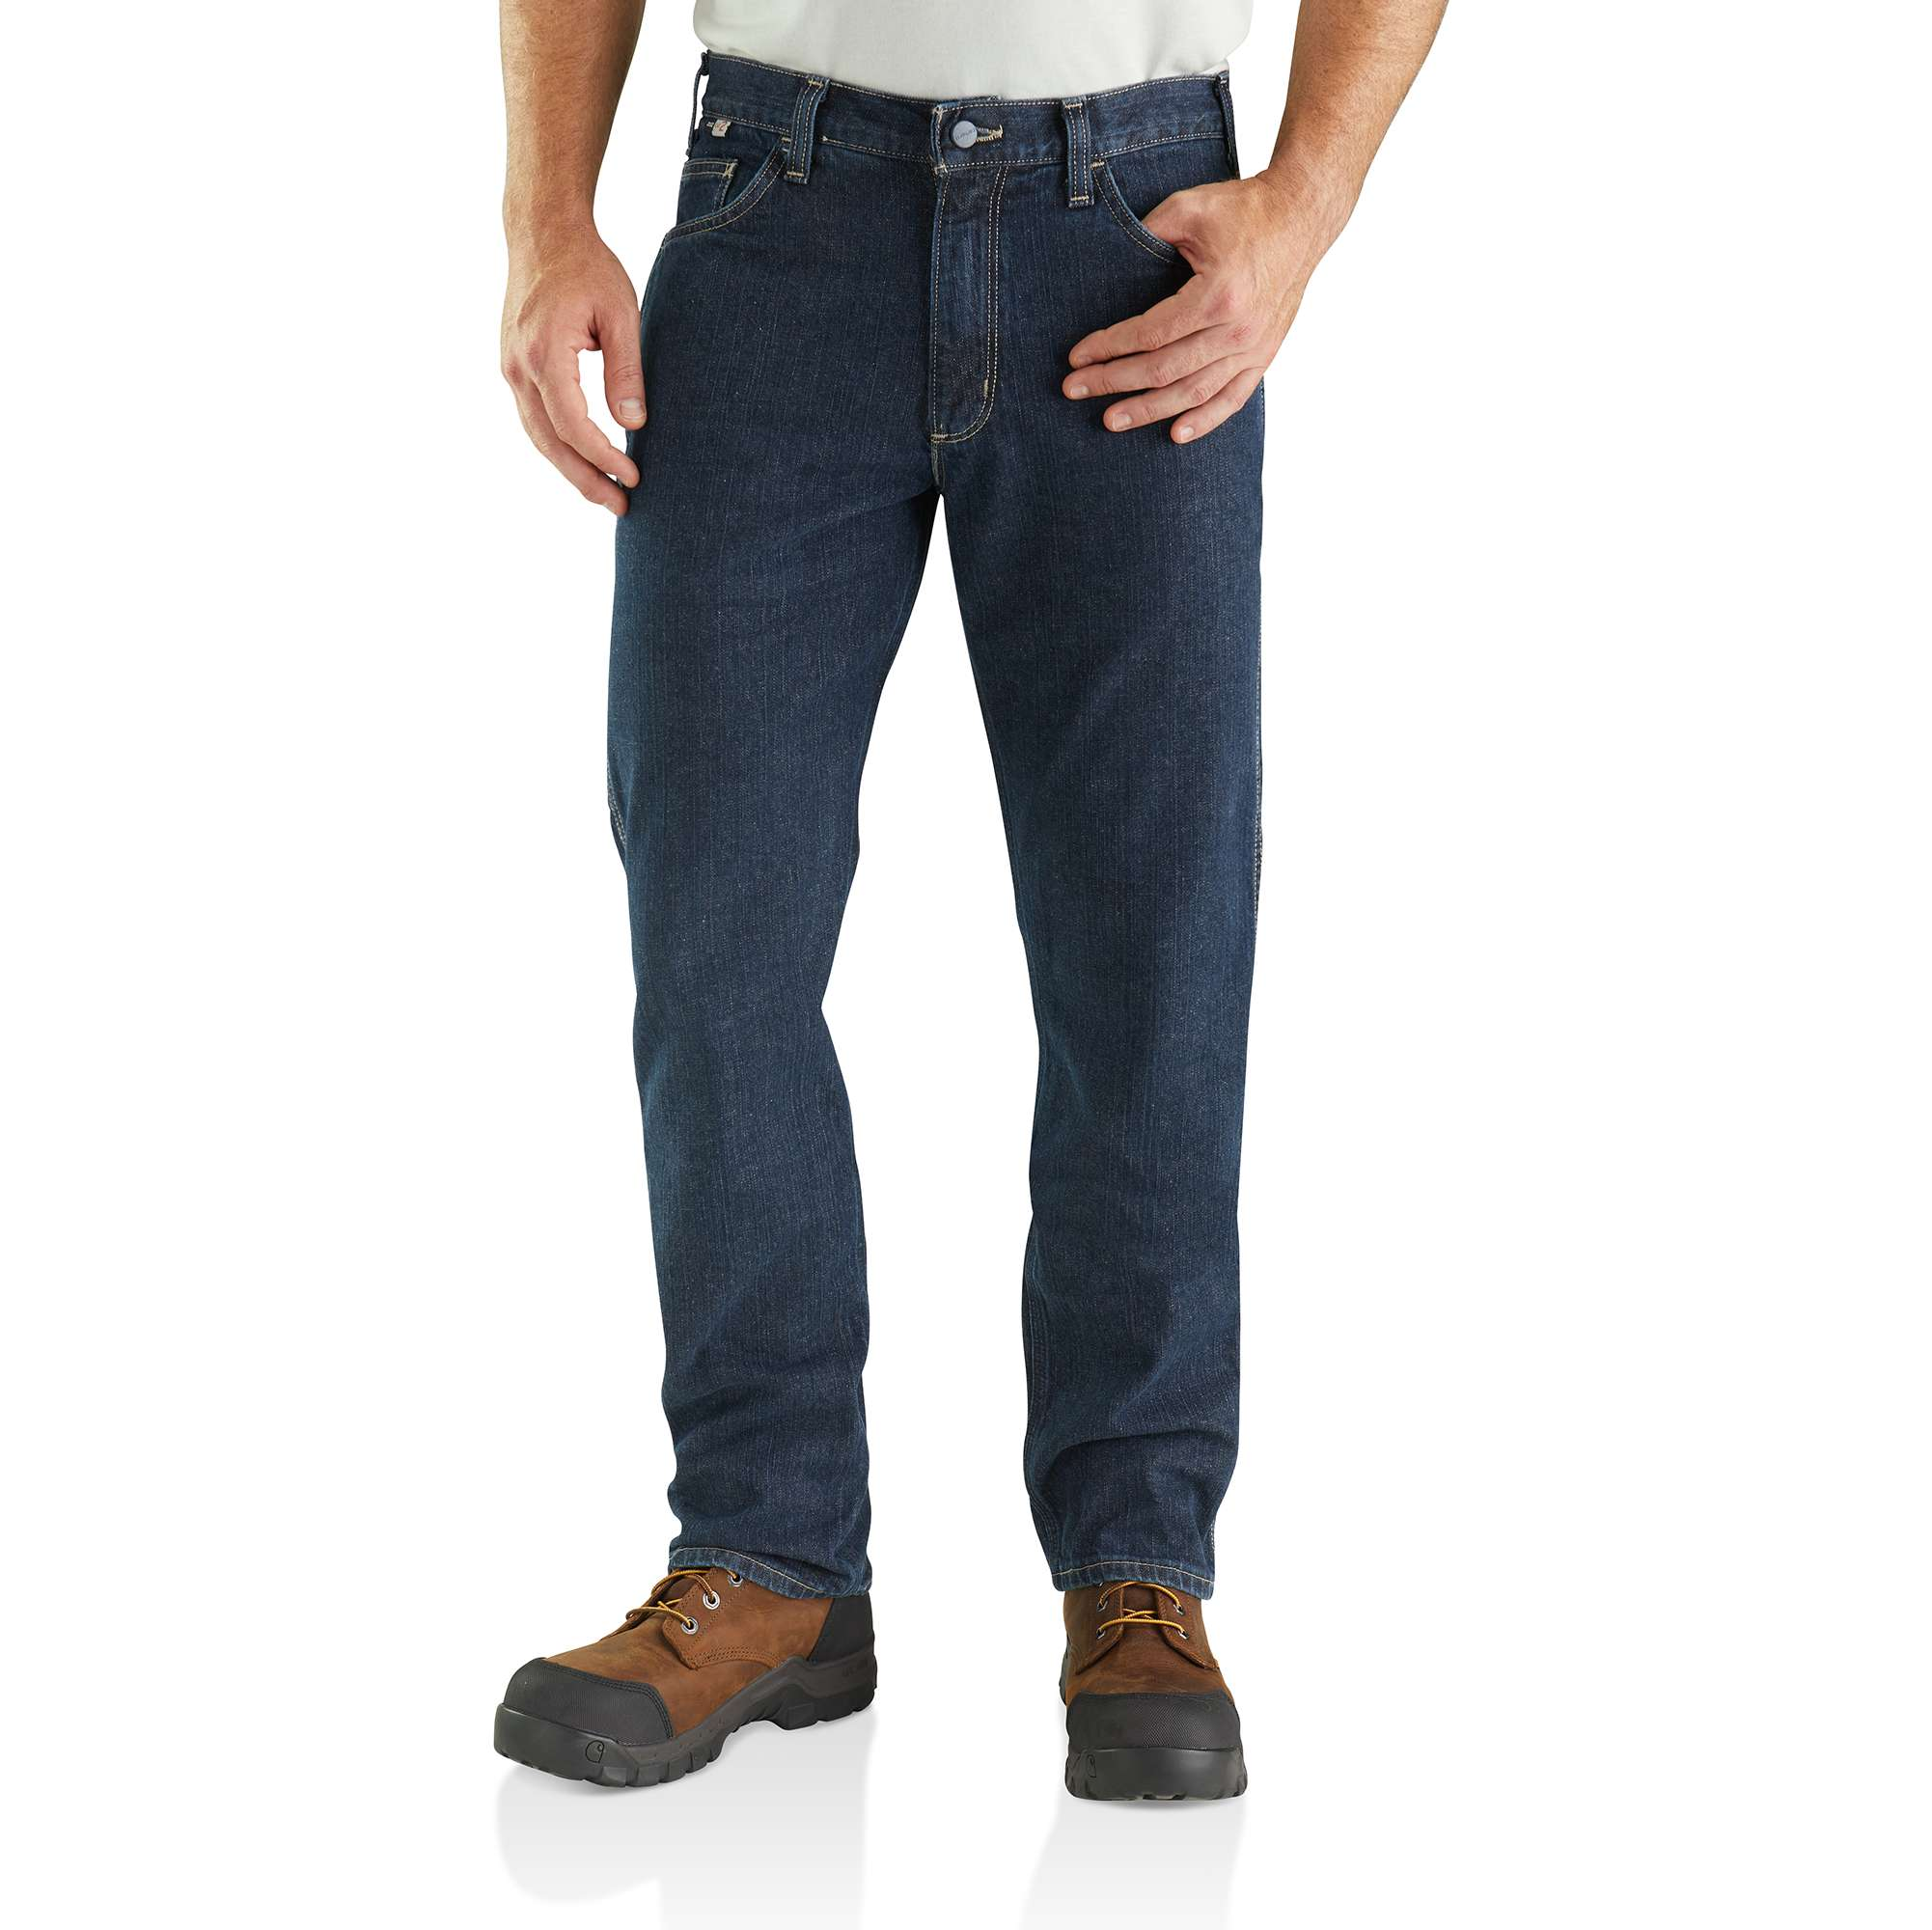 Carhartt Flame-resistant Rugged Flex Jean - Relaxed Fit